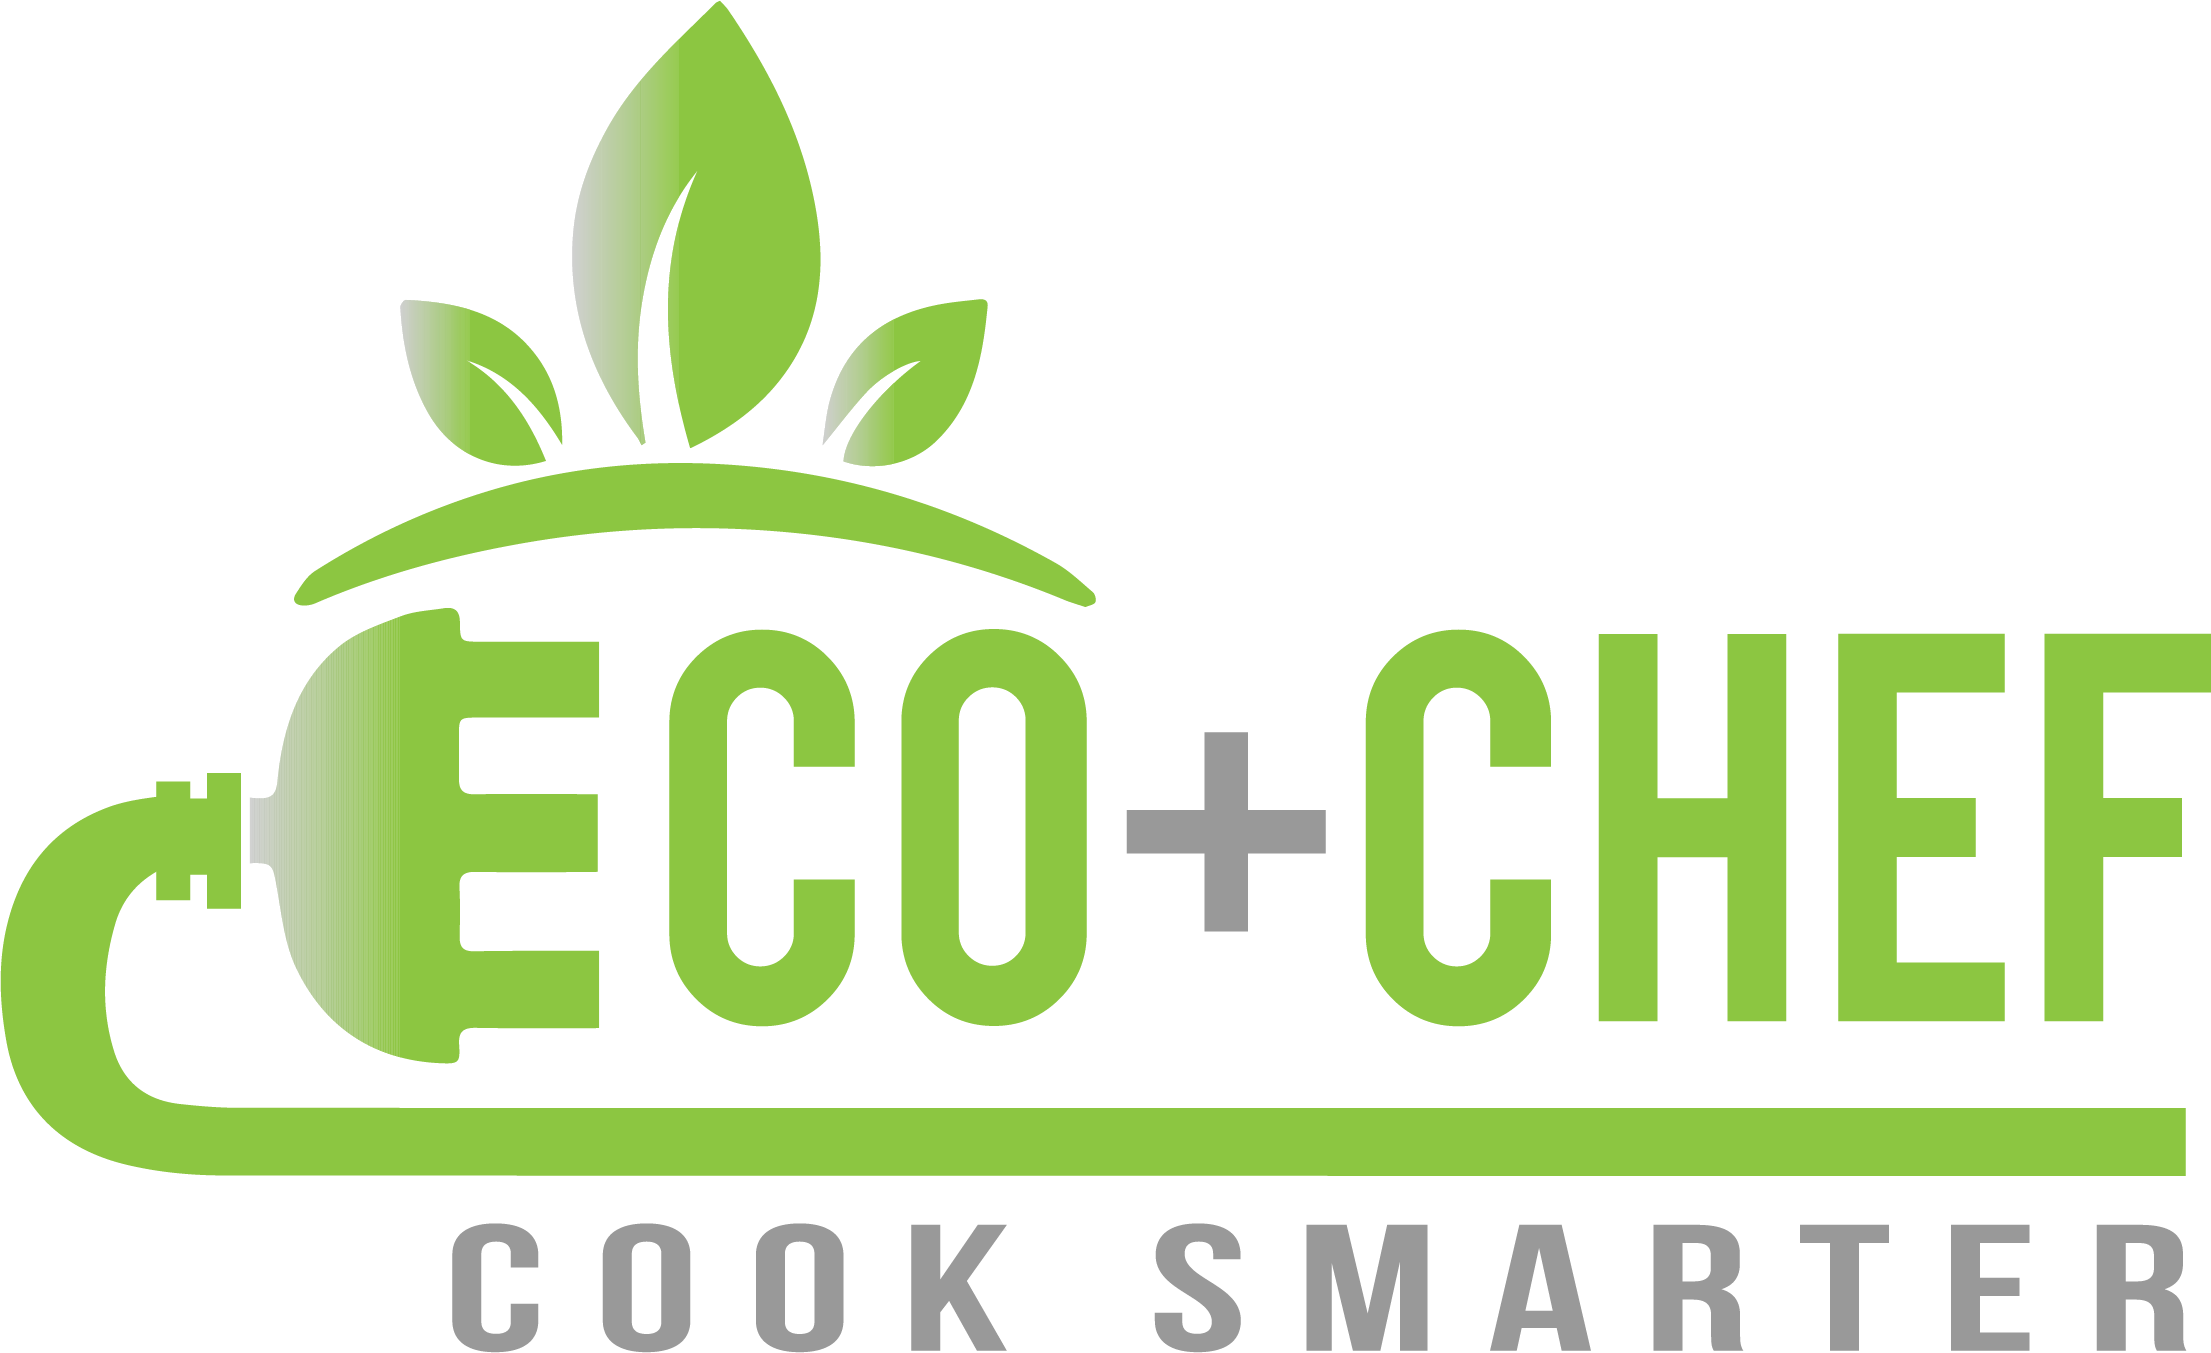 eco+chef_logo_green3.png